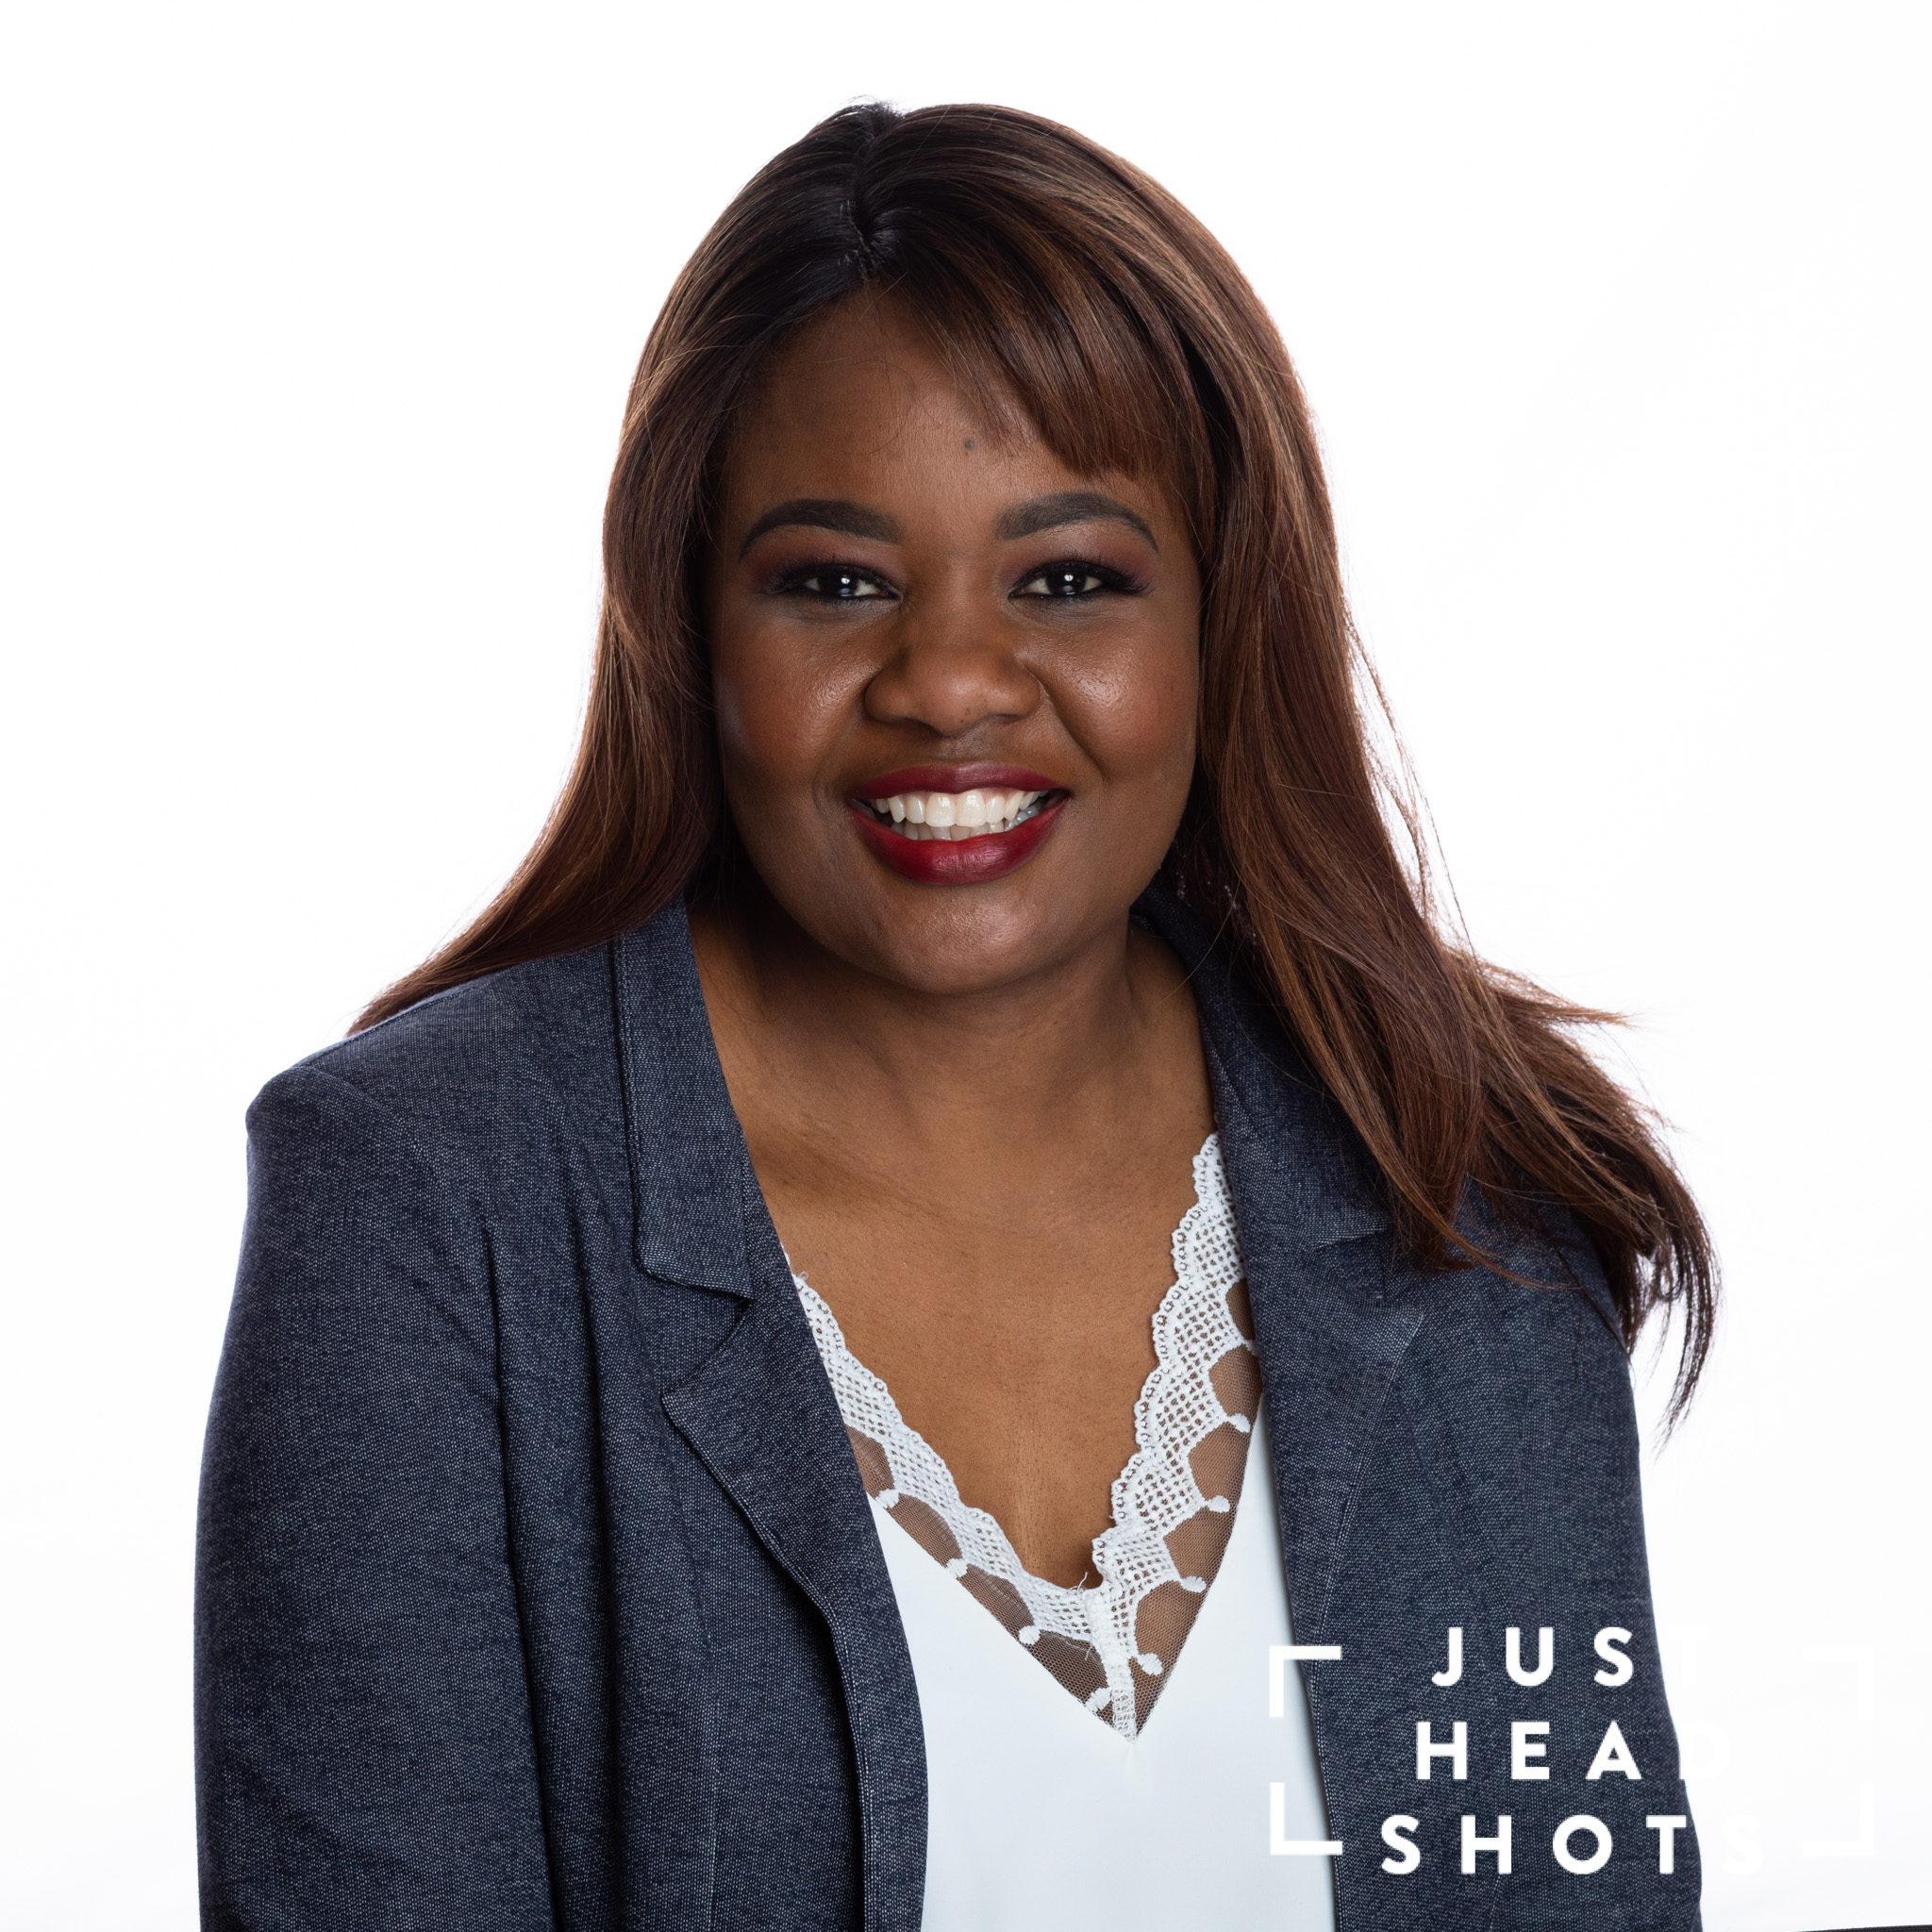 Professional headshot of a black woman wearing a white blouse and grey jacket photographed with Profoto studio flash on white background with shoulders angled to the right of the photo.